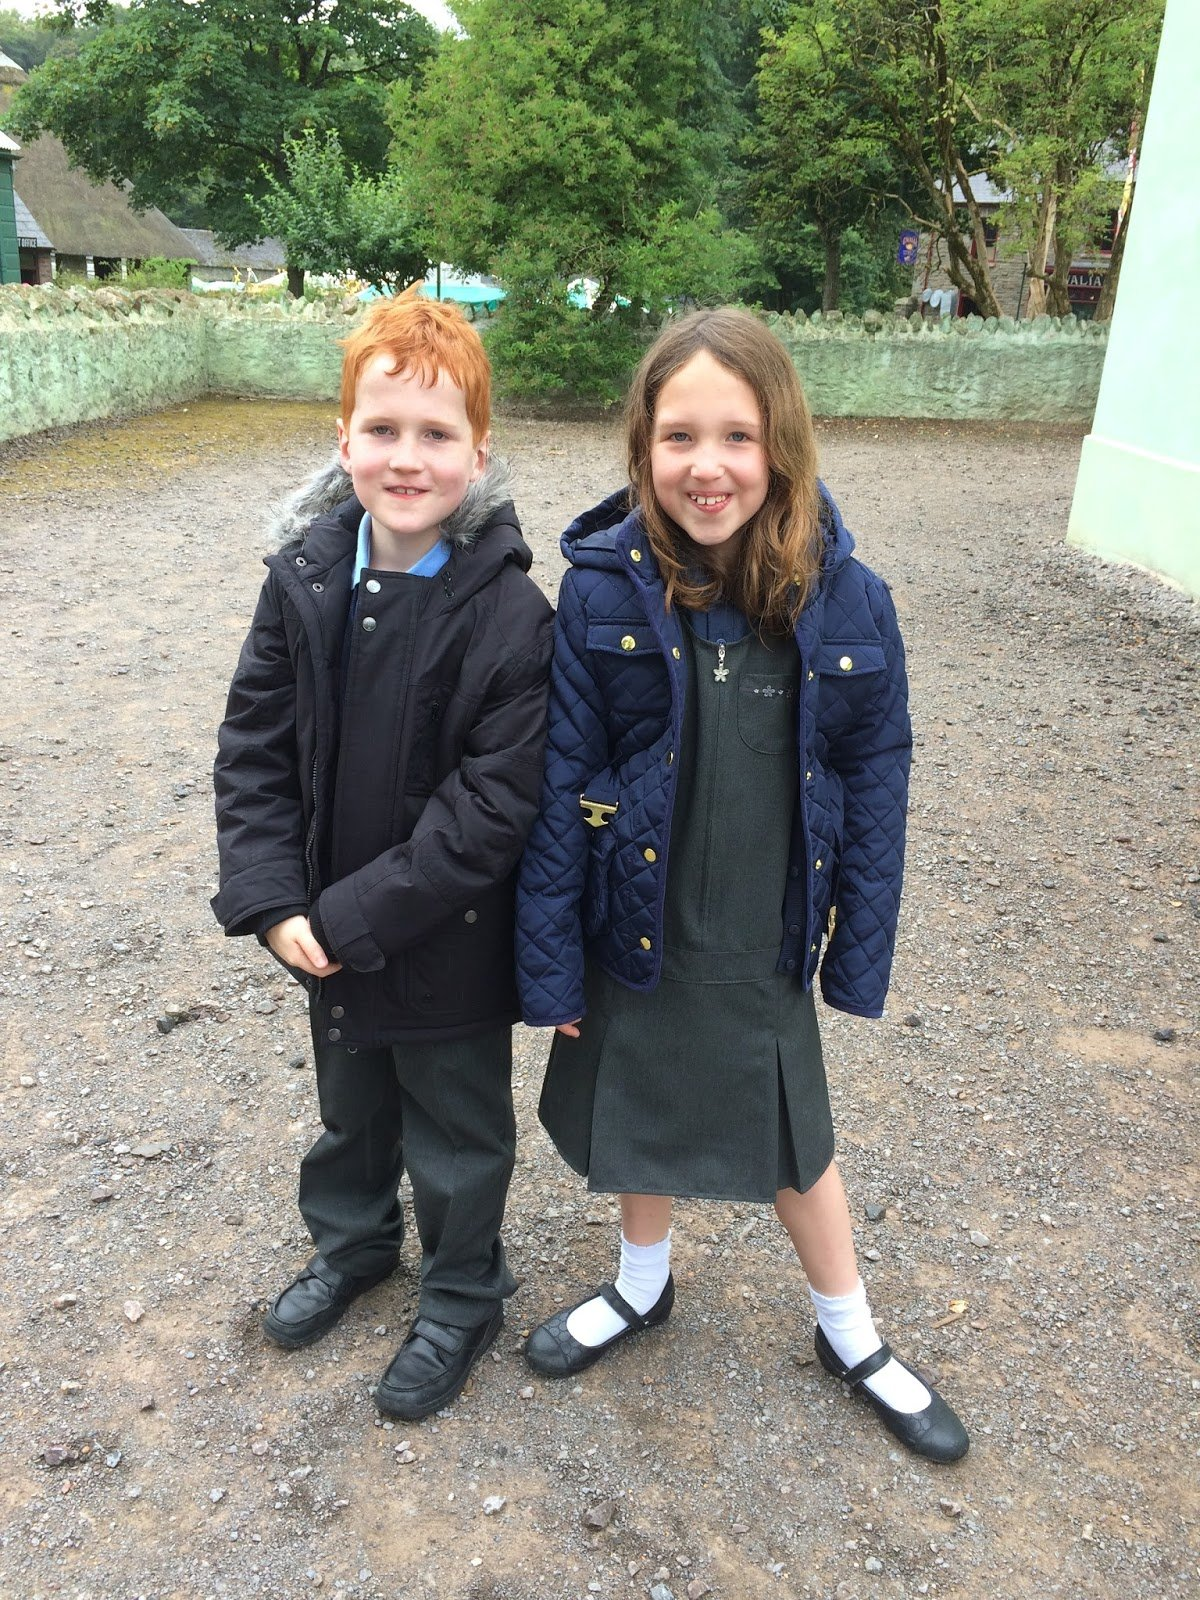 Caitlin & Ieuan at St. Fagans, Cardiff. Back to school hacks